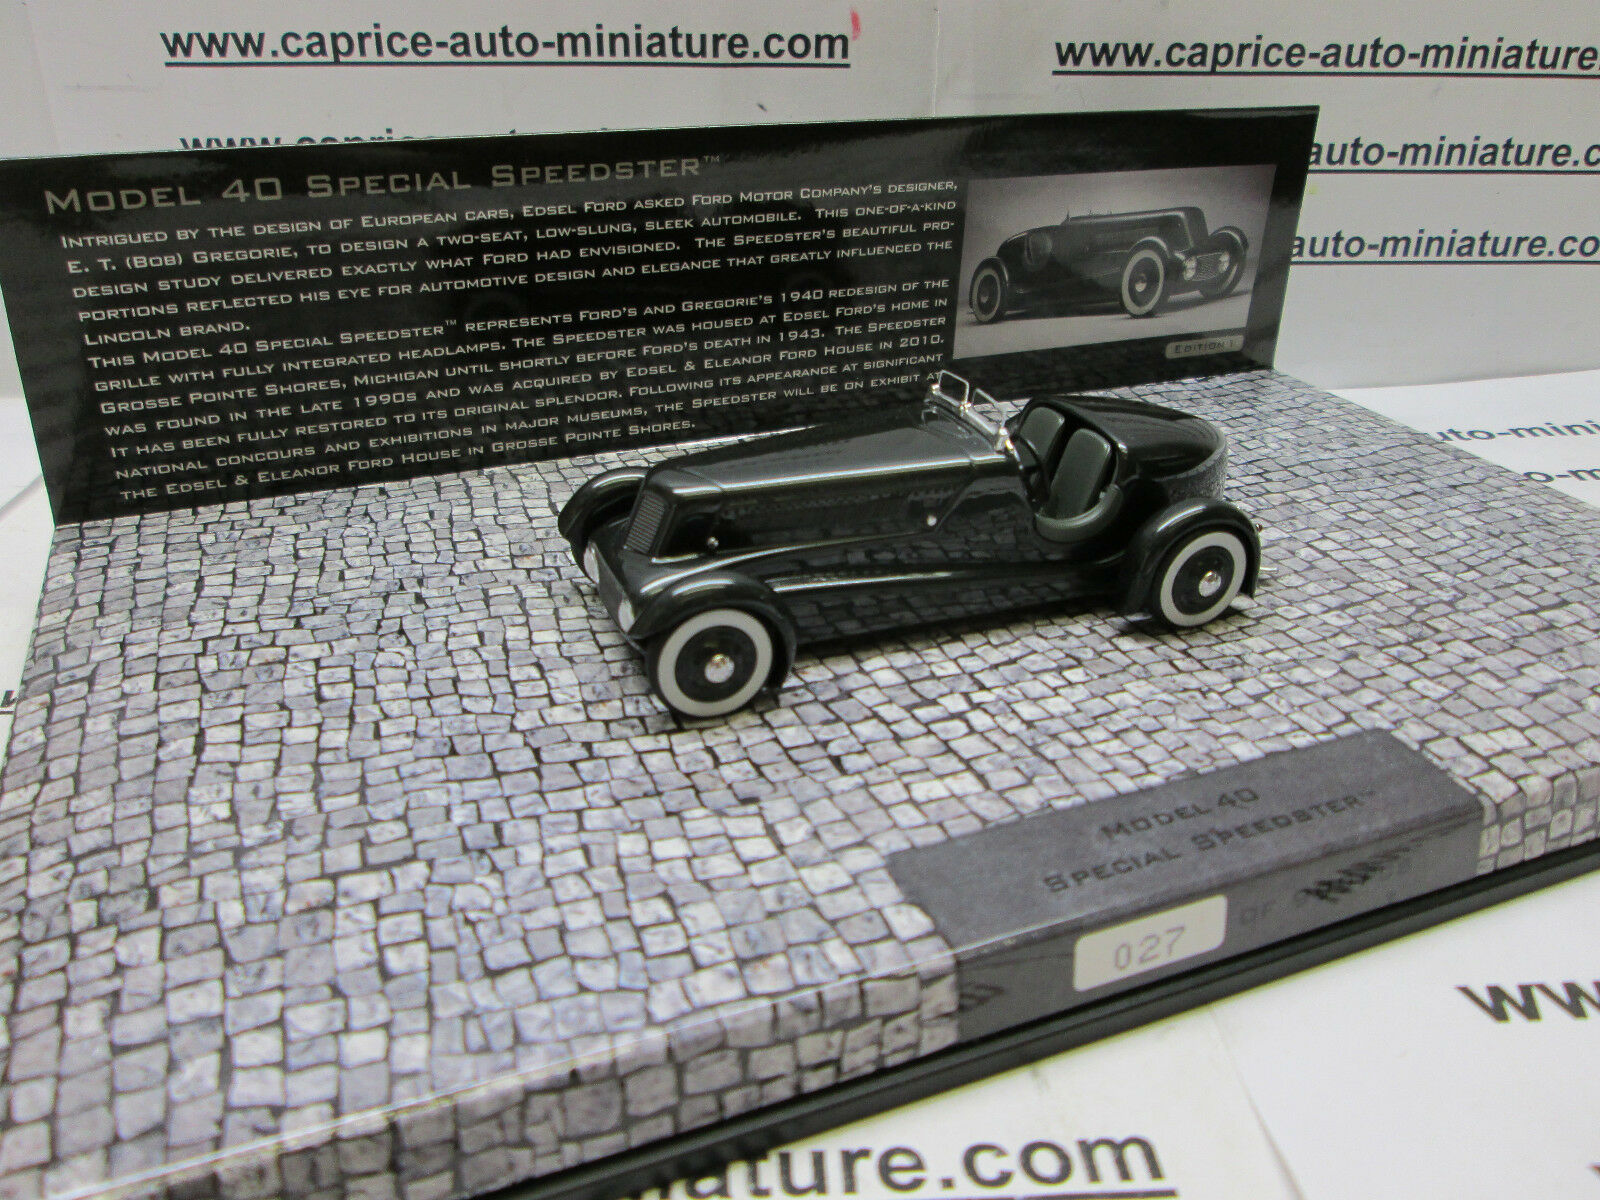 FORD MODEL 40 SPECIAL SPEEDSTER    LIMITED 999 EX.   MINICHAMPS 1 43  bénéfice nul